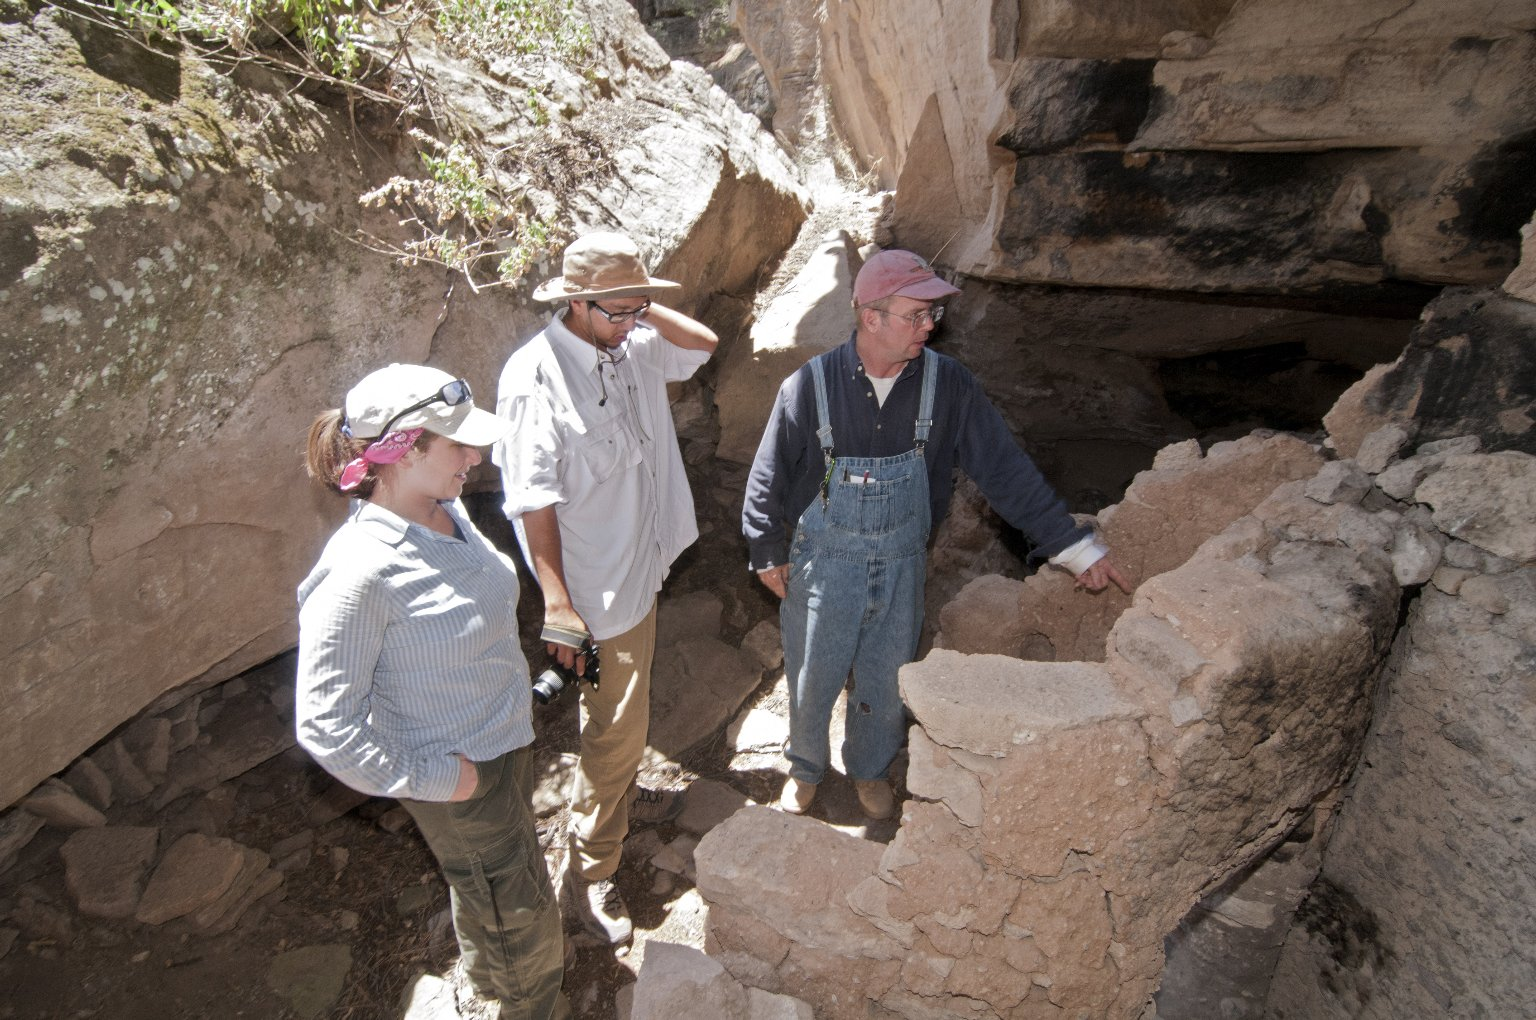 L-R: Hannah Chazin, PHD Student, Univ. of Chicago; Garrett Briggs; and Dr. Steve Nash at the Hinkle Park Cliff Dwelling.